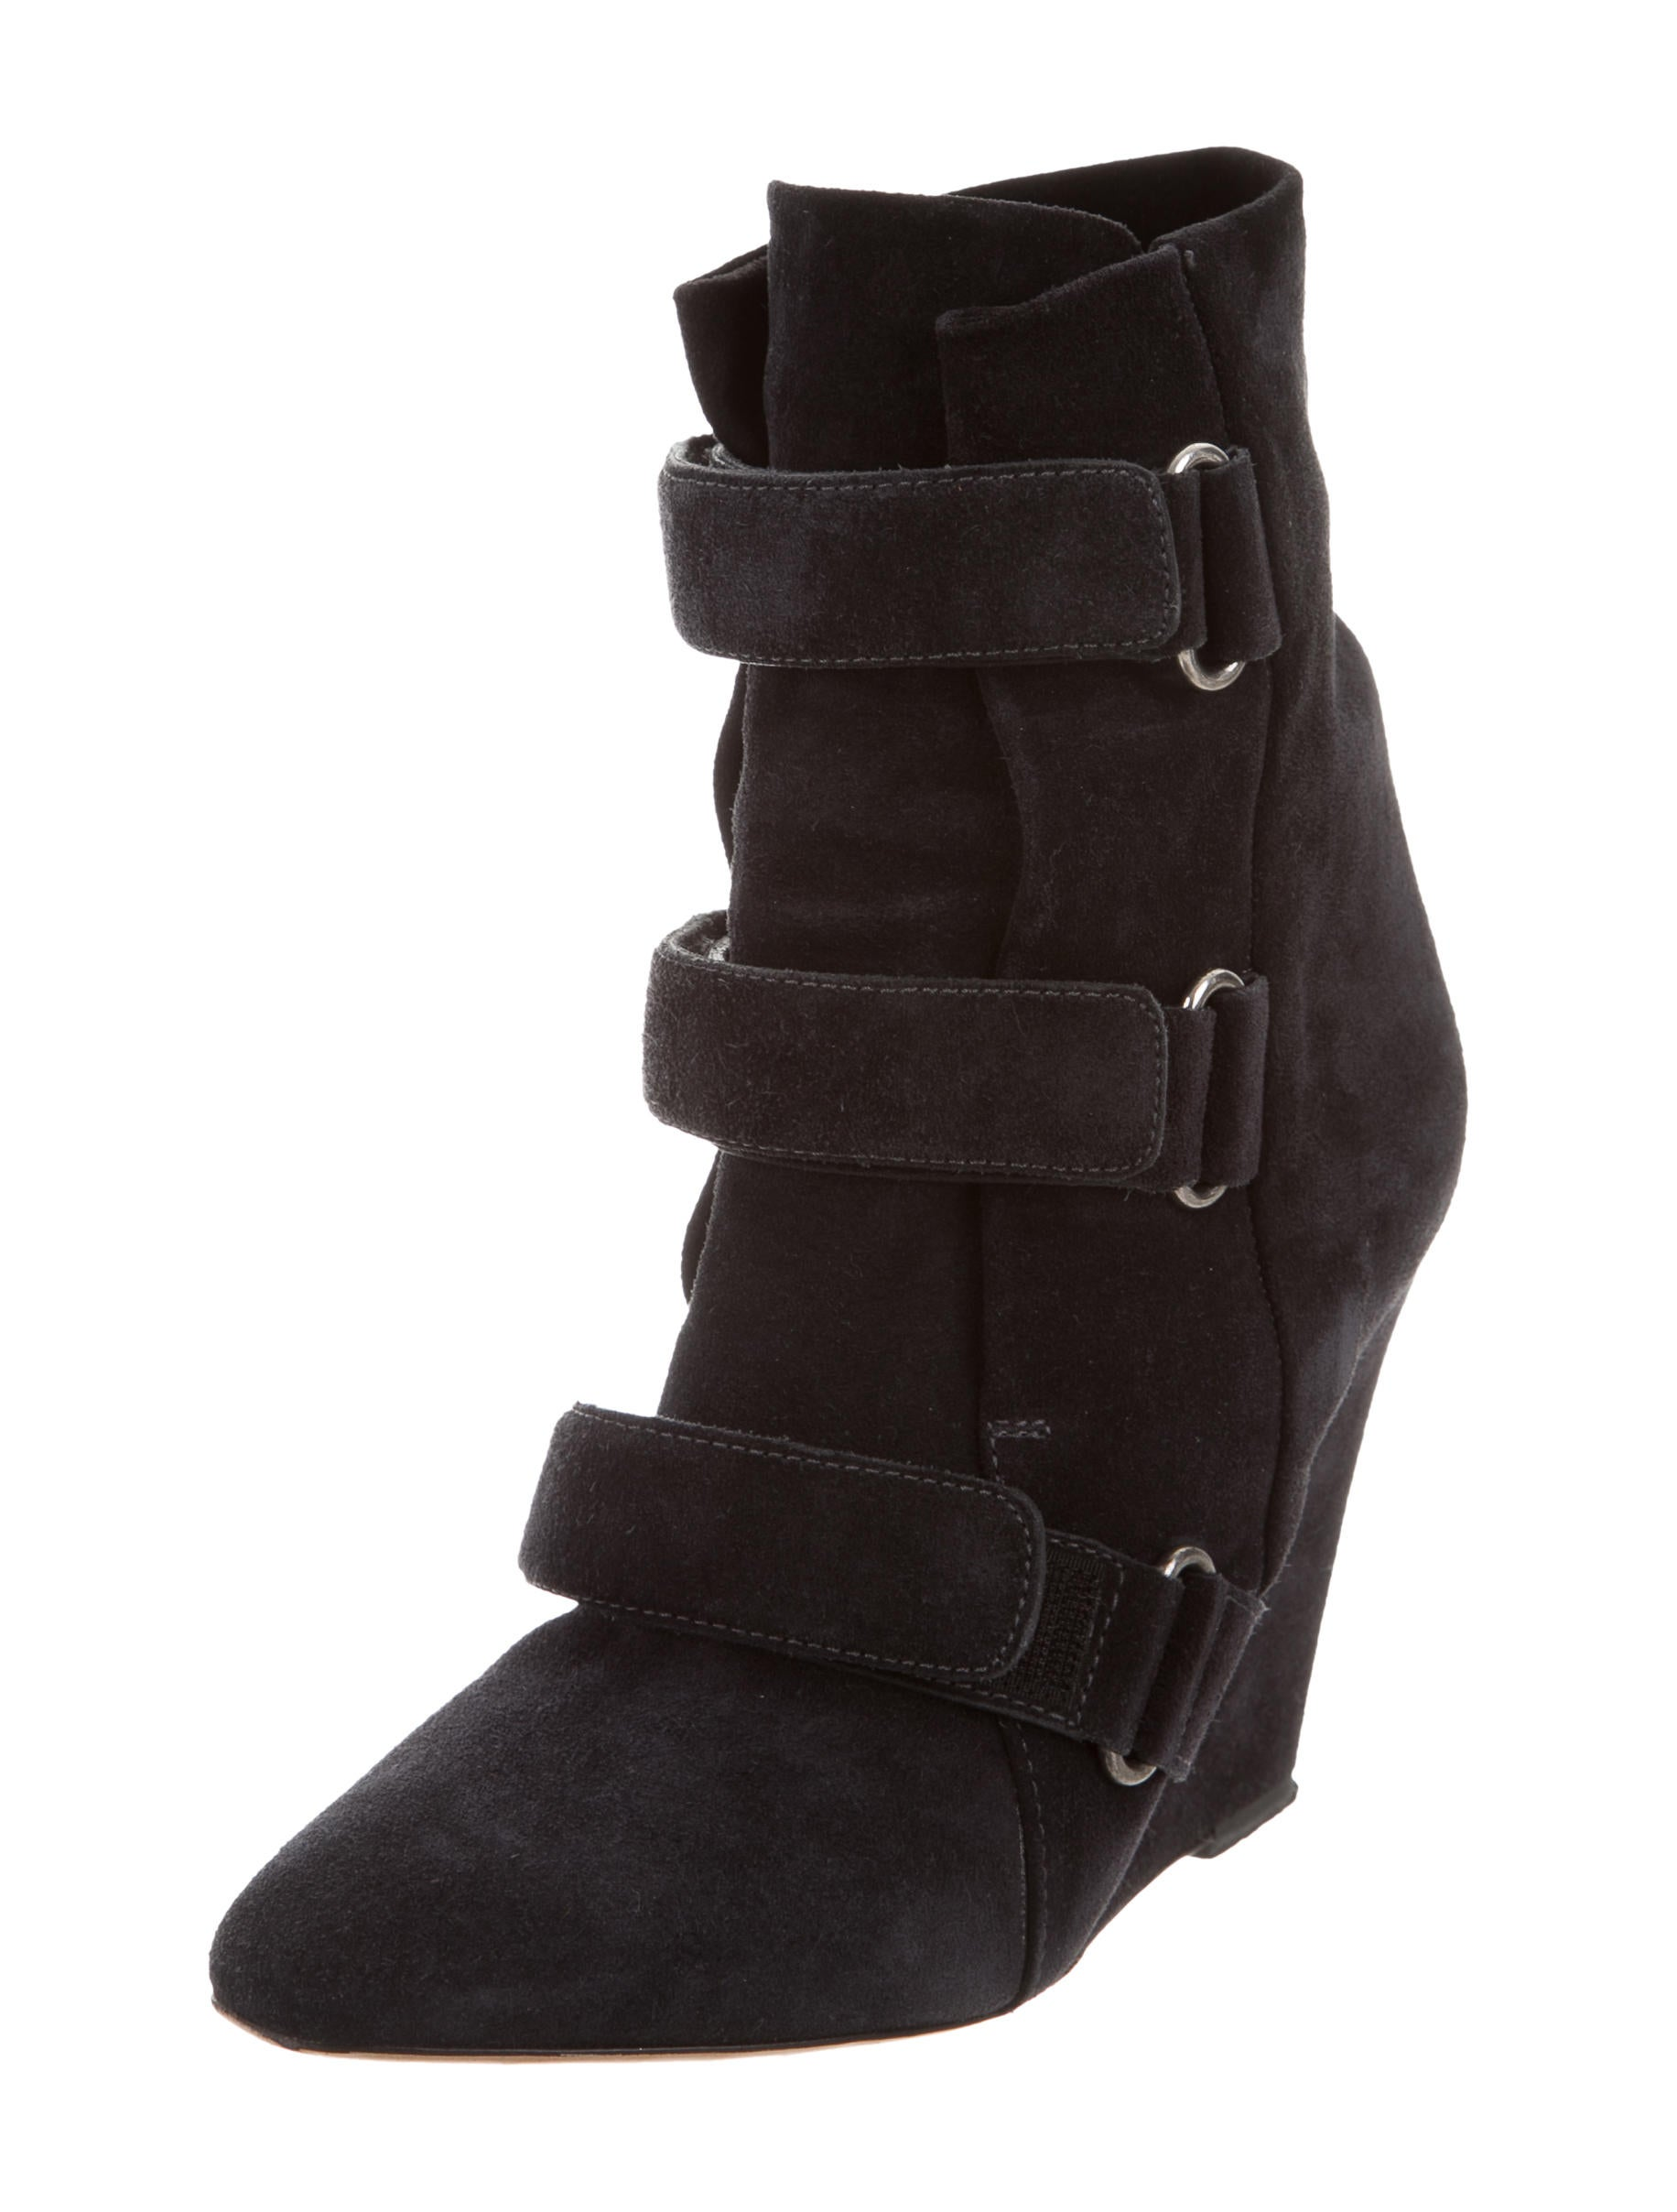 marant suede wedge ankle boots shoes isa40978